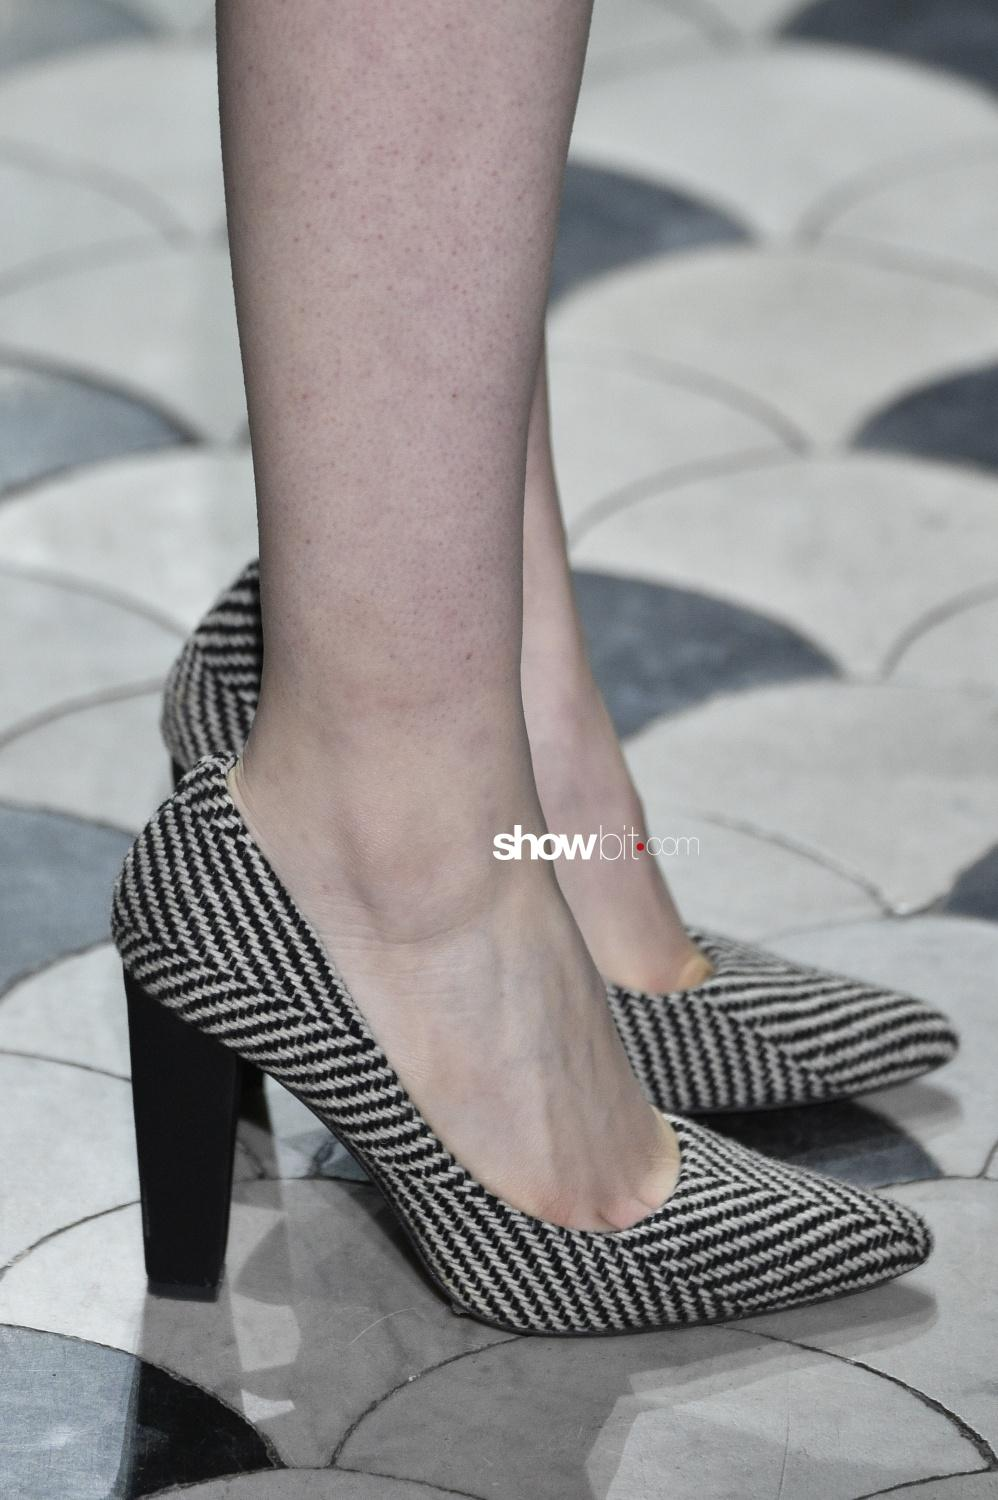 Lutz Huelle close-up shoes Woman Fall Winter 2018 Paris